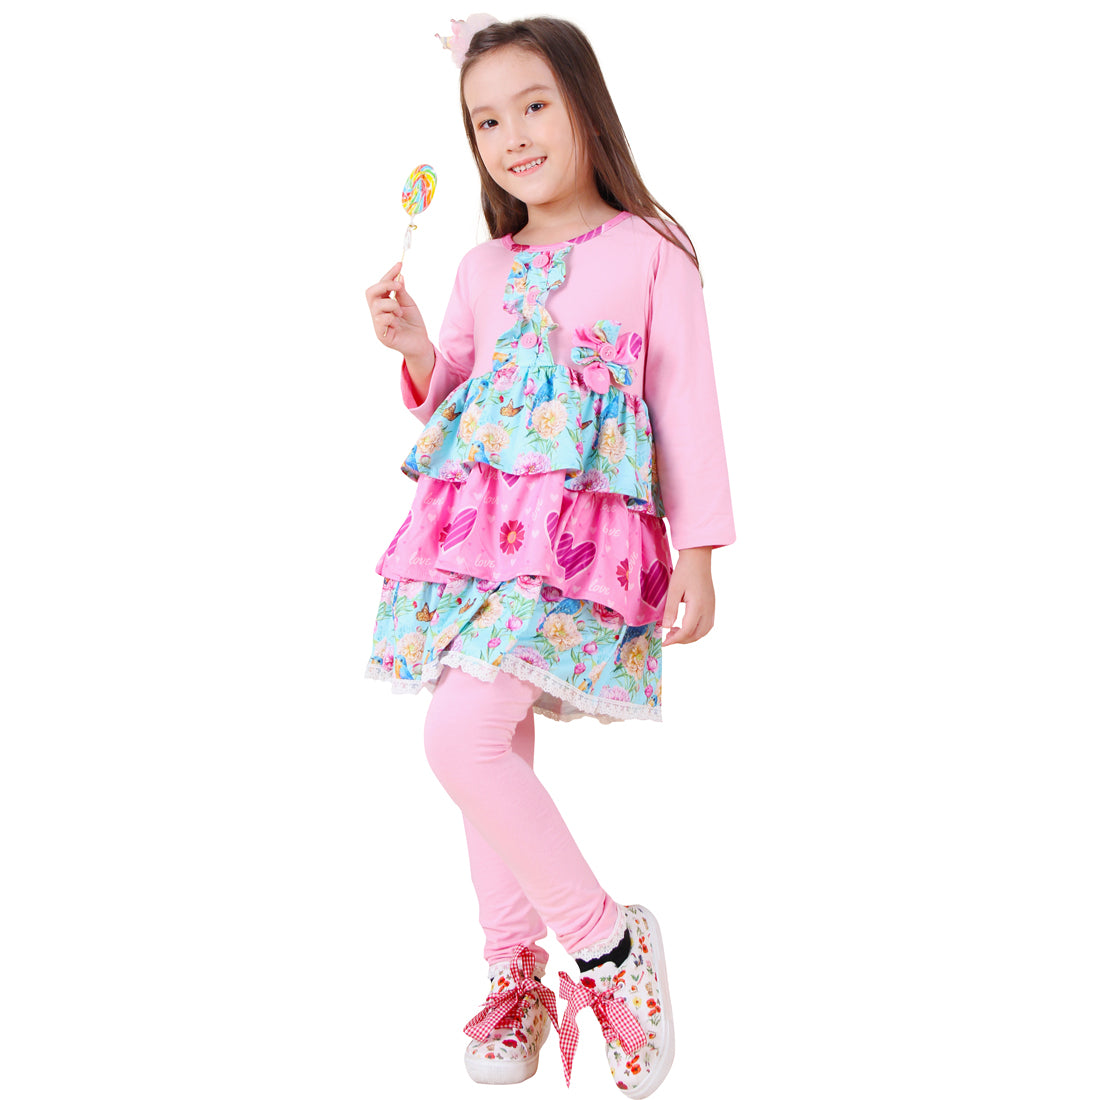 Baby Toddler Little Girls Valentines Day Spring Floral Heart Tiered Leggings Set - Pink